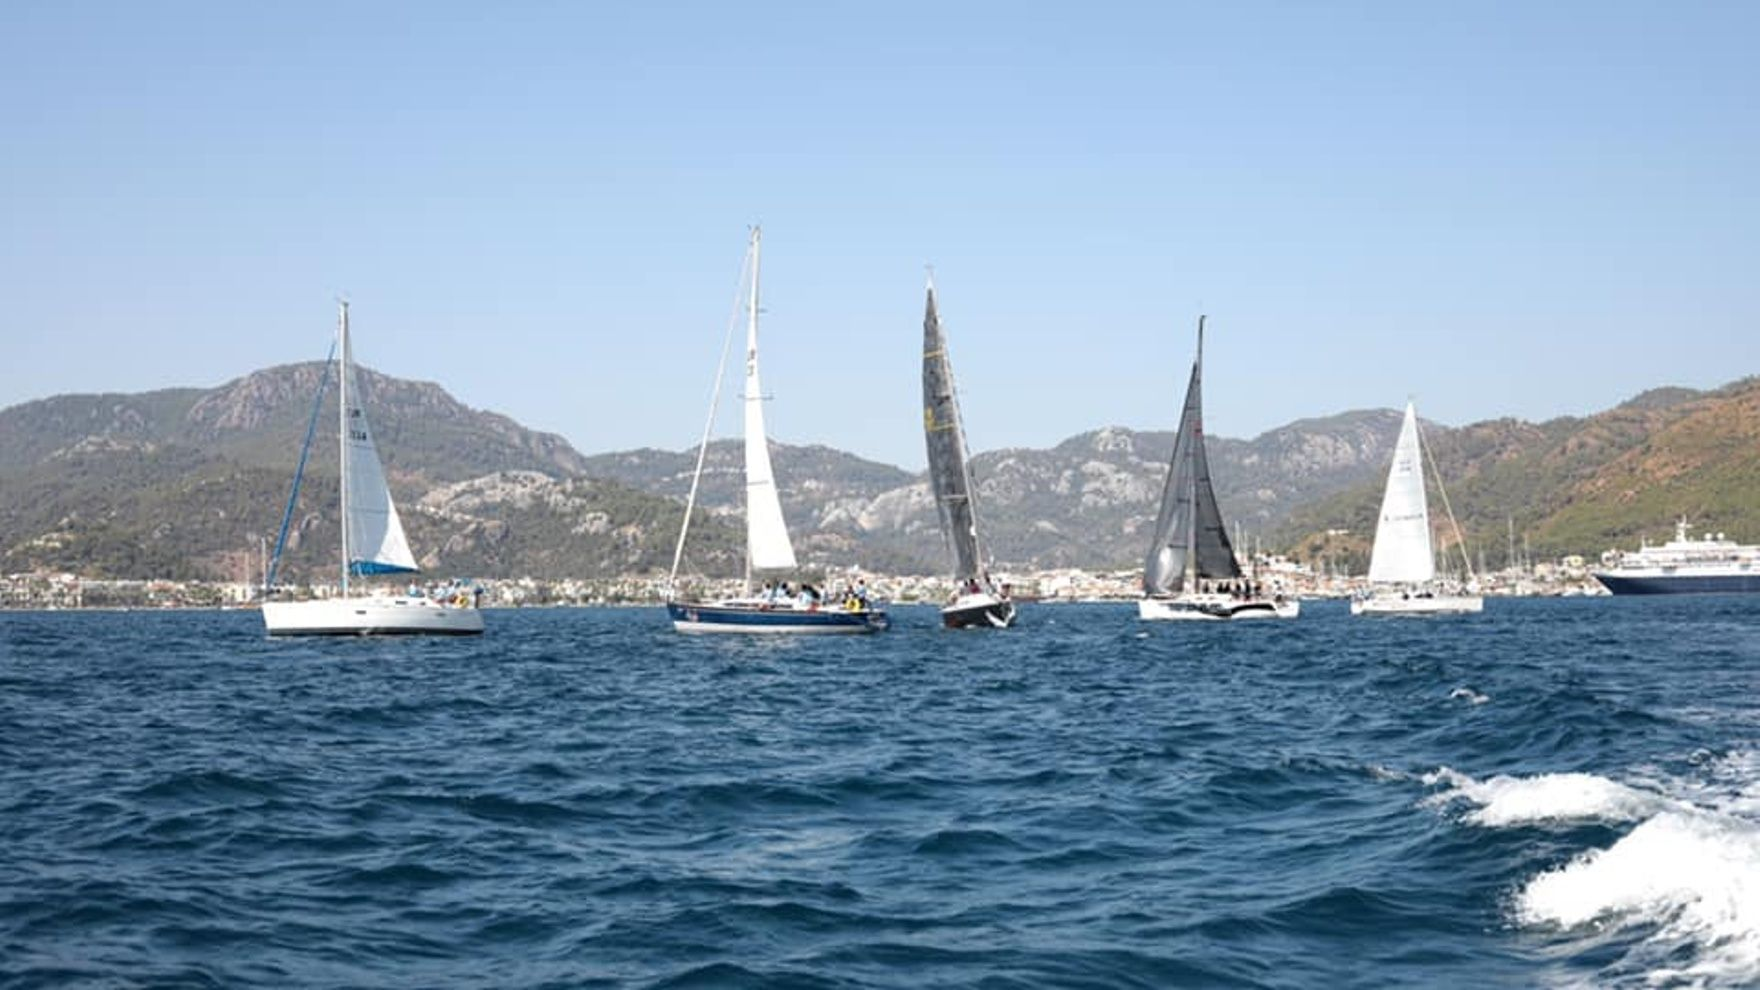 Sailing Time Cup 2021